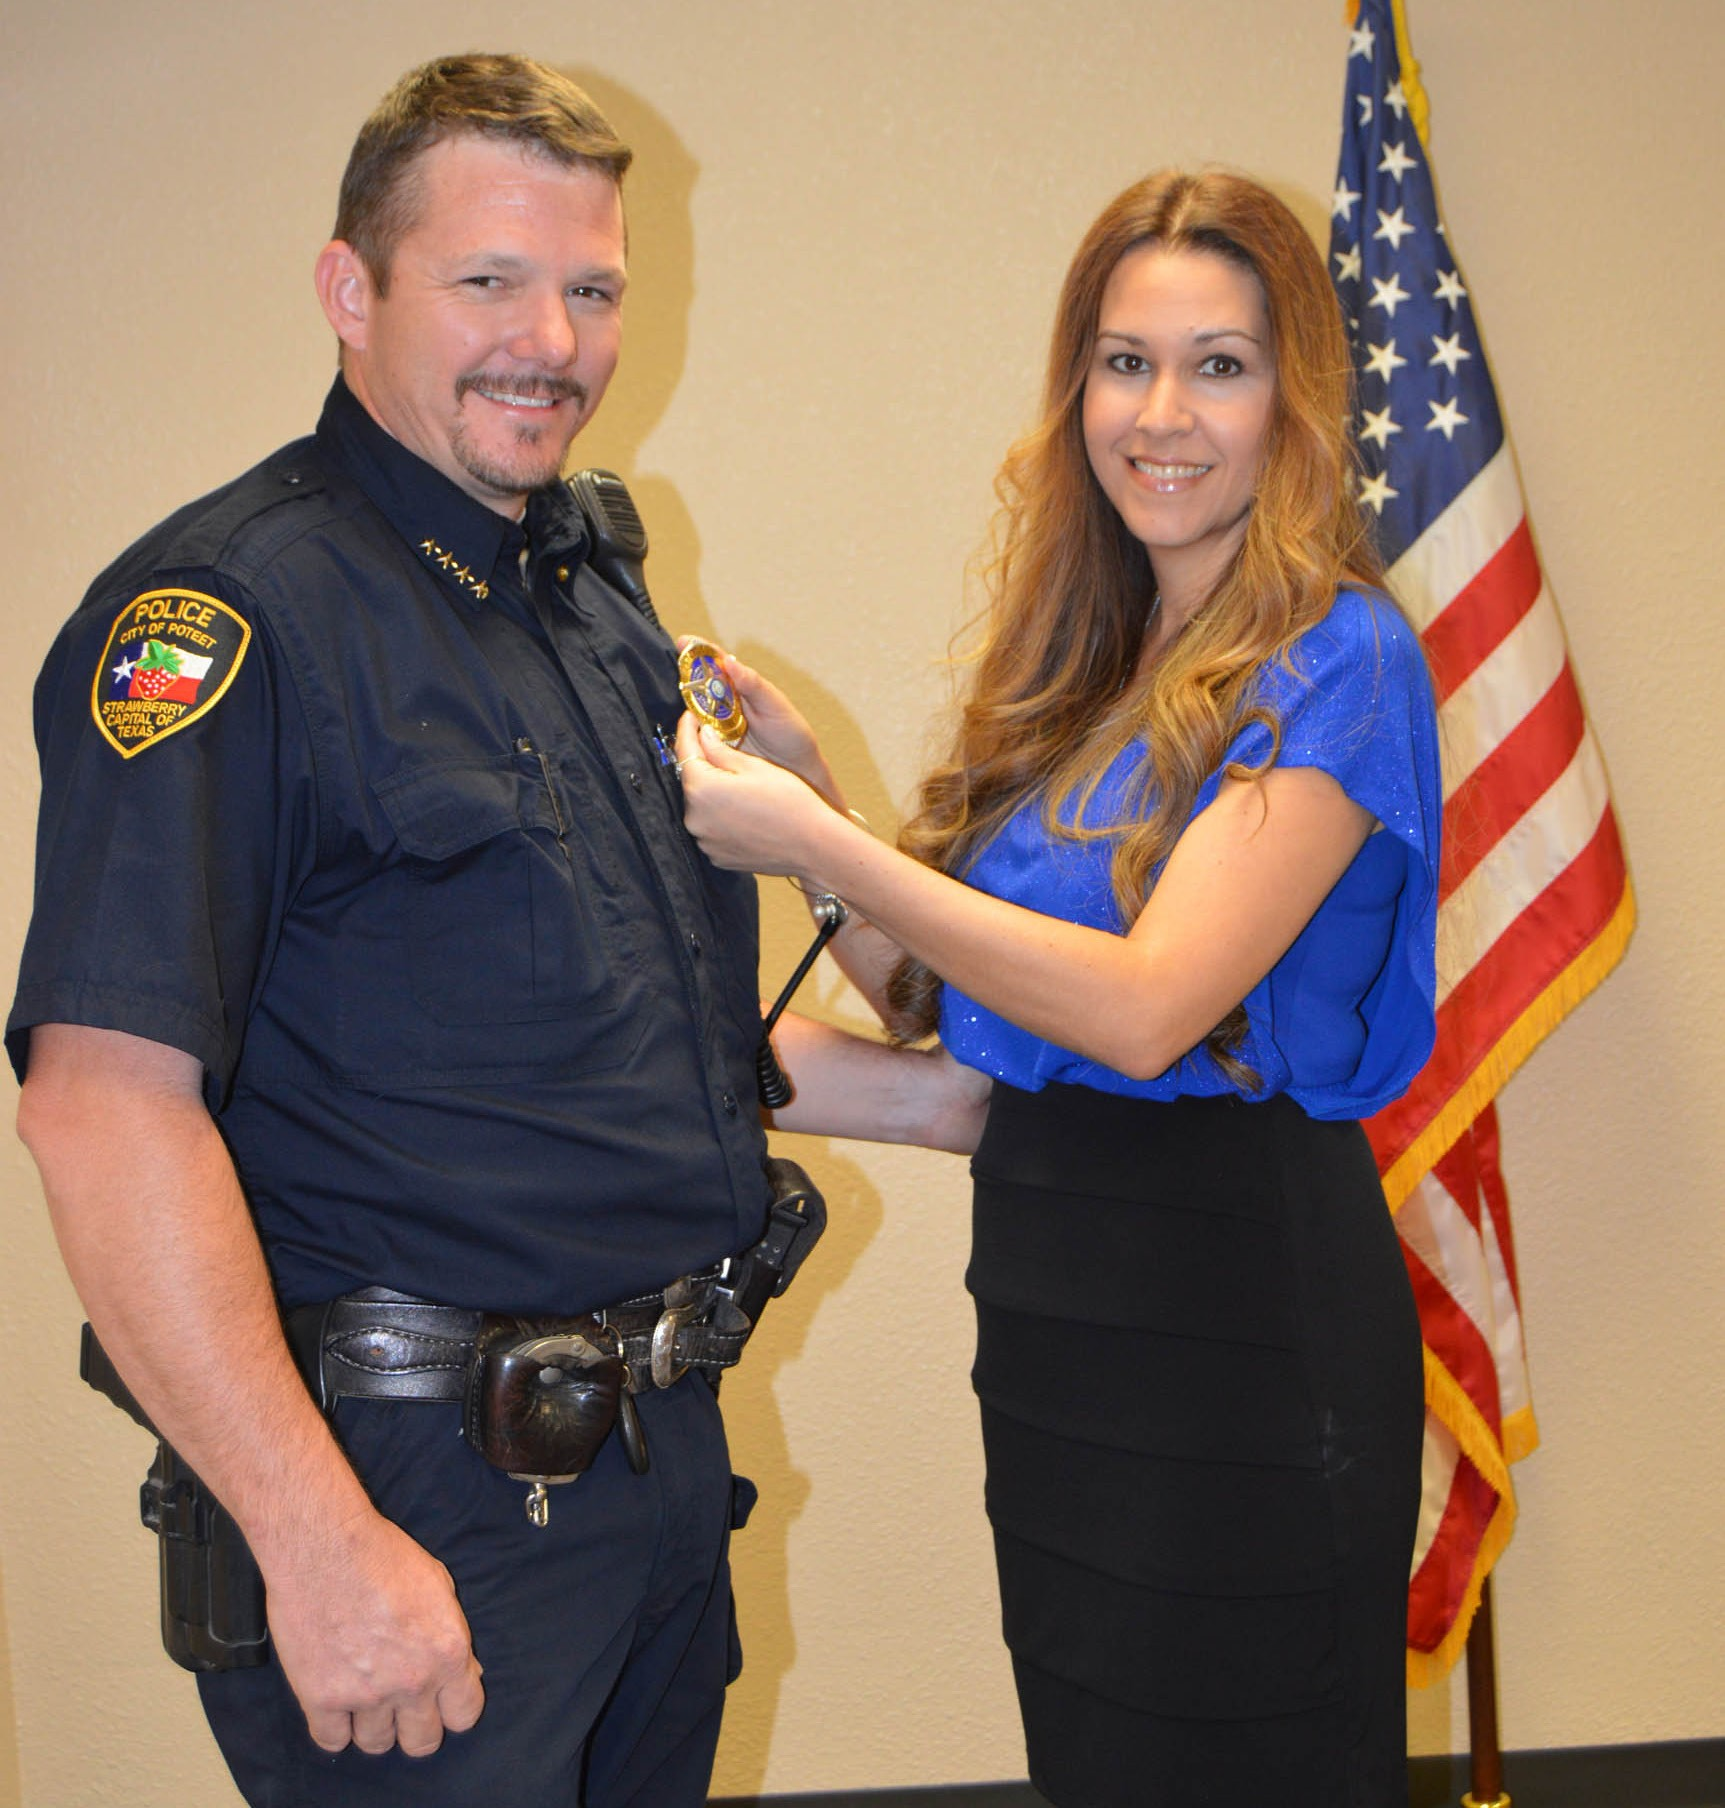 The City of Poteet named Bruce Hickman as their new Chief of Police on Monday, September 14. His wife, Jennifer Wilborn-HIckman helps him pin on his badge during the ceremony held in council chambers. A reception followed. SUE BROWN | PLEASANTON EXPRES